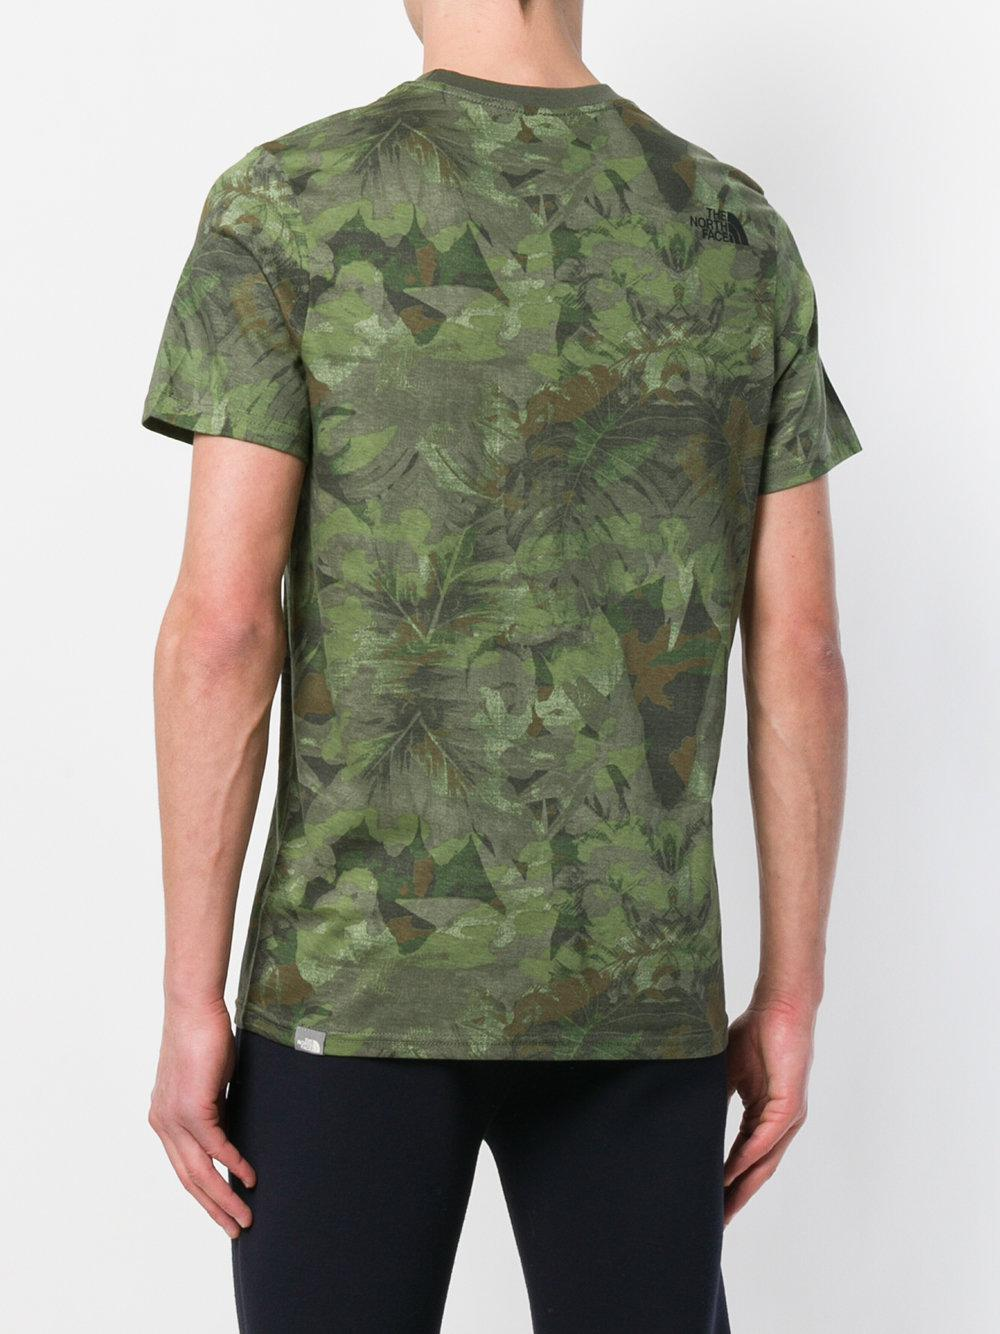 ff94c73c6 Lyst - The North Face Camouflage Print T-shirt in Green for Men